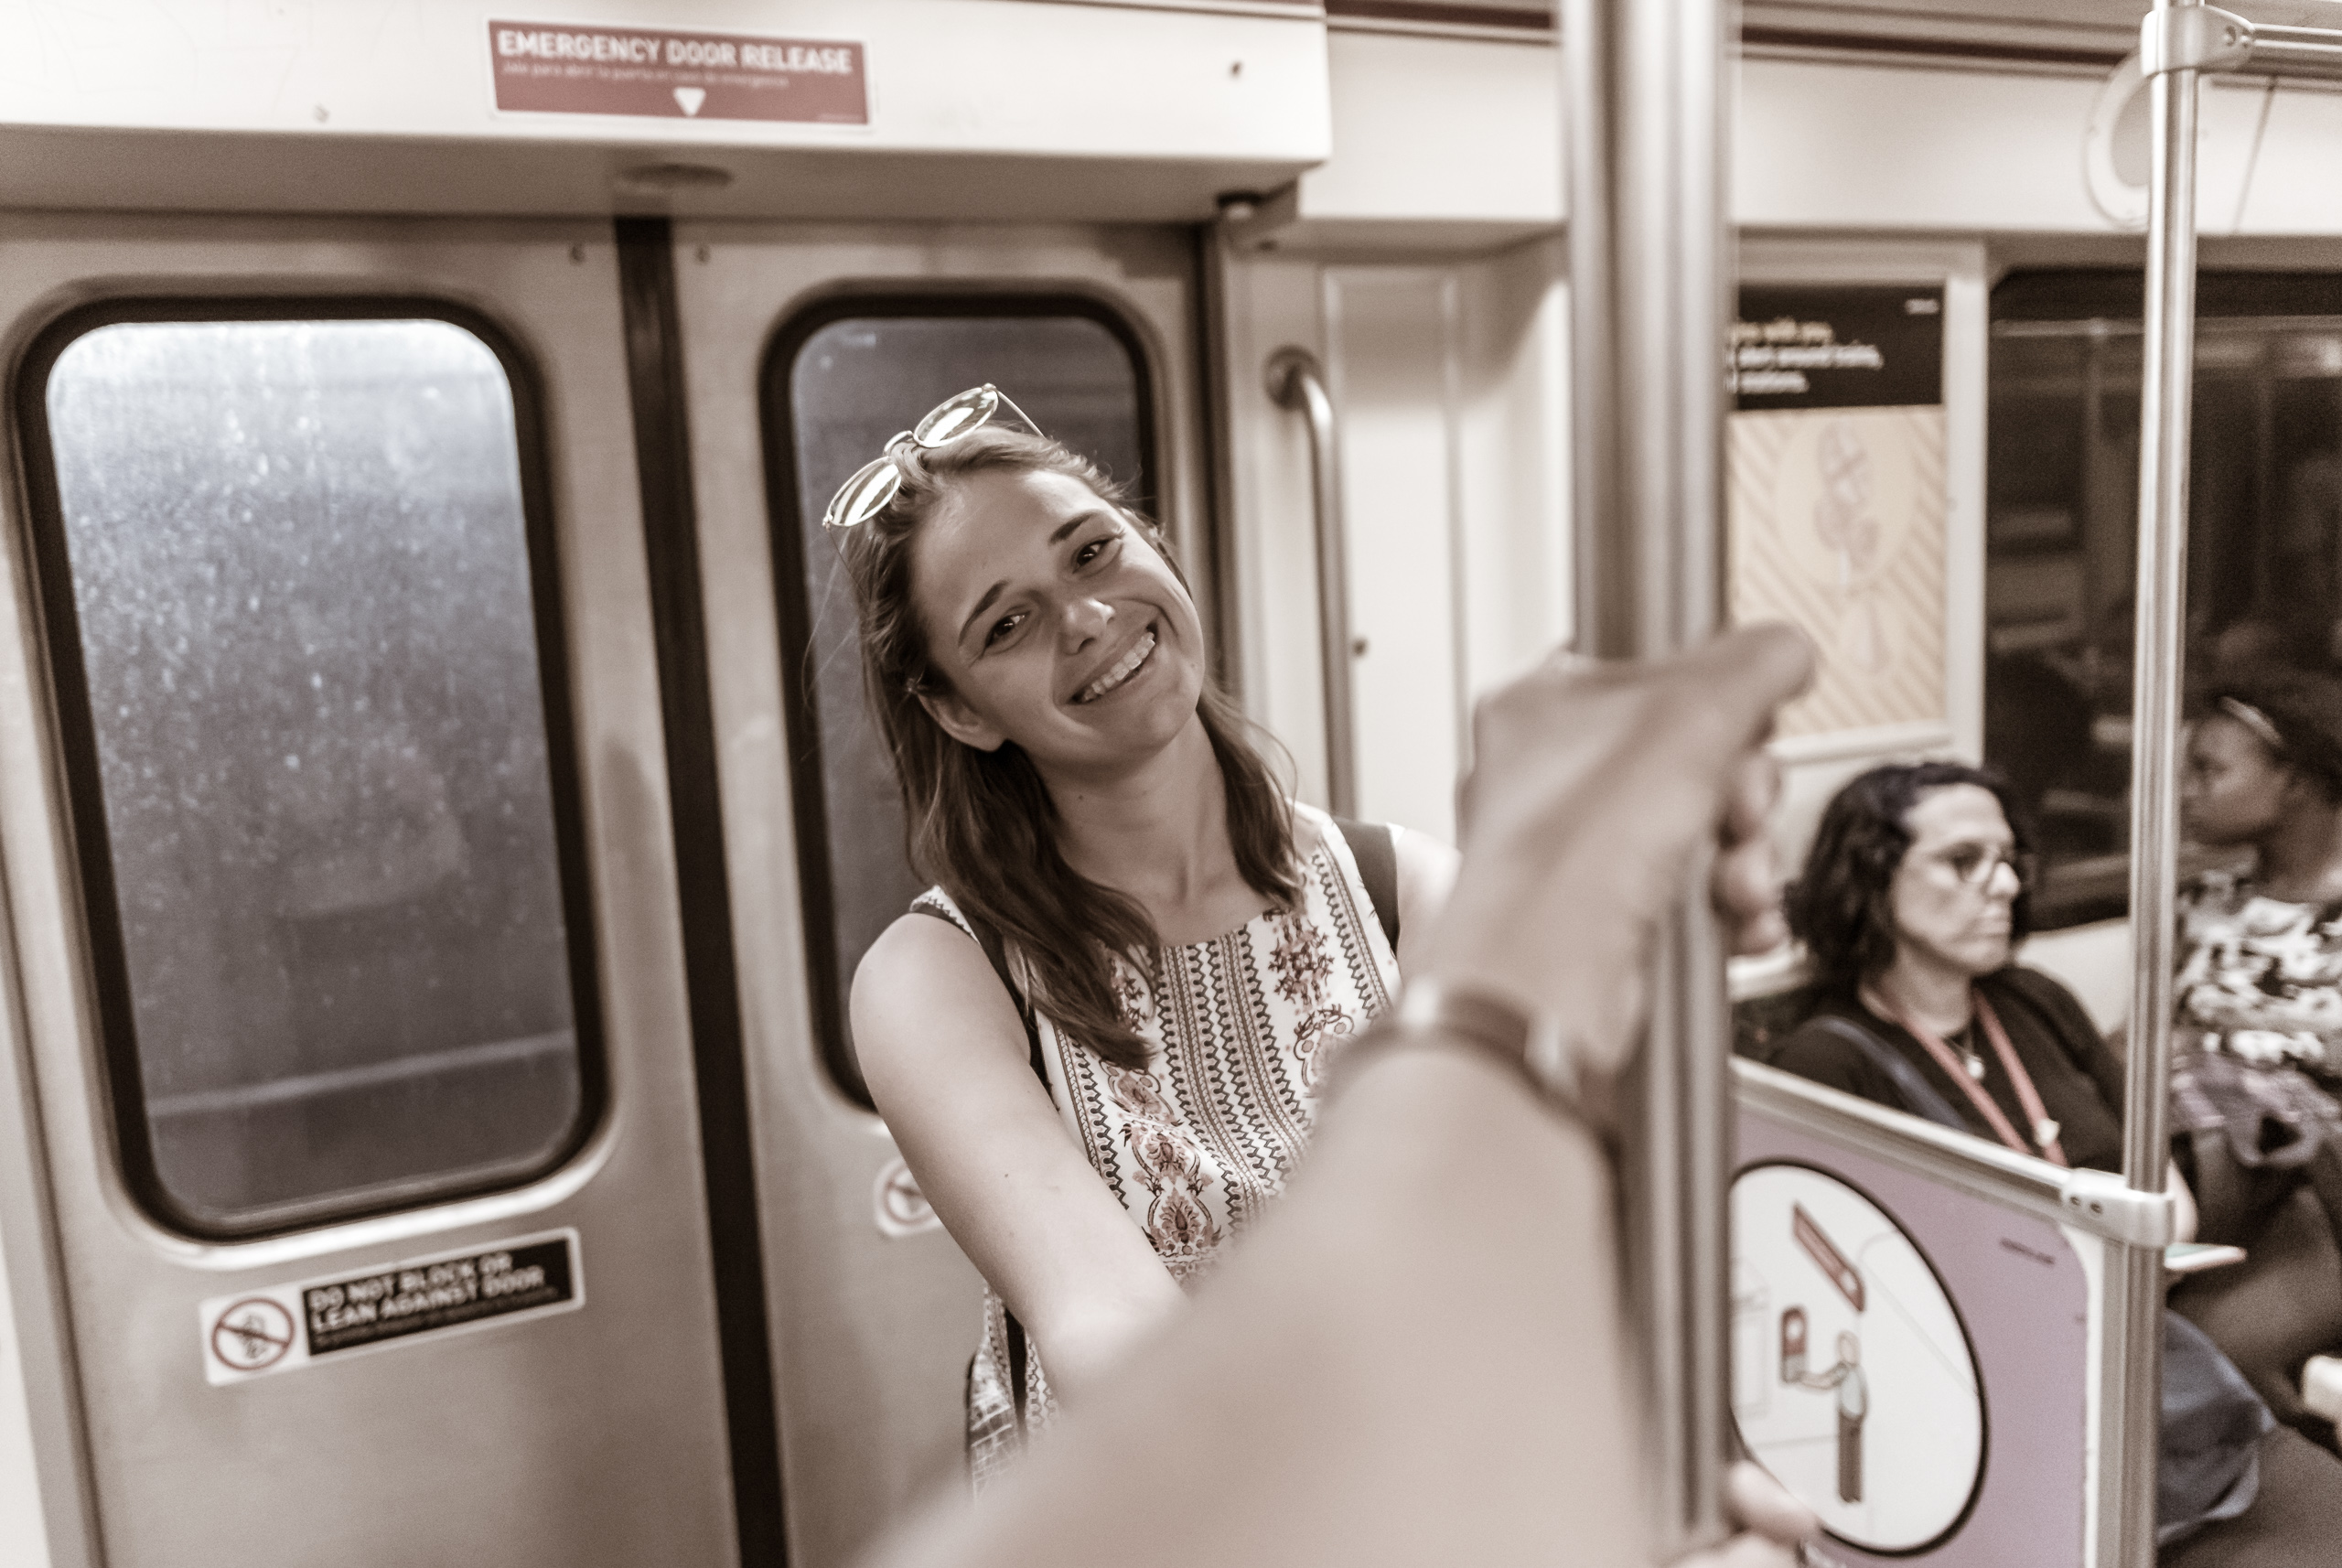 my hand holding a bar in the middle of a Red Line subway car and Kristina smiling from the other side of the bar